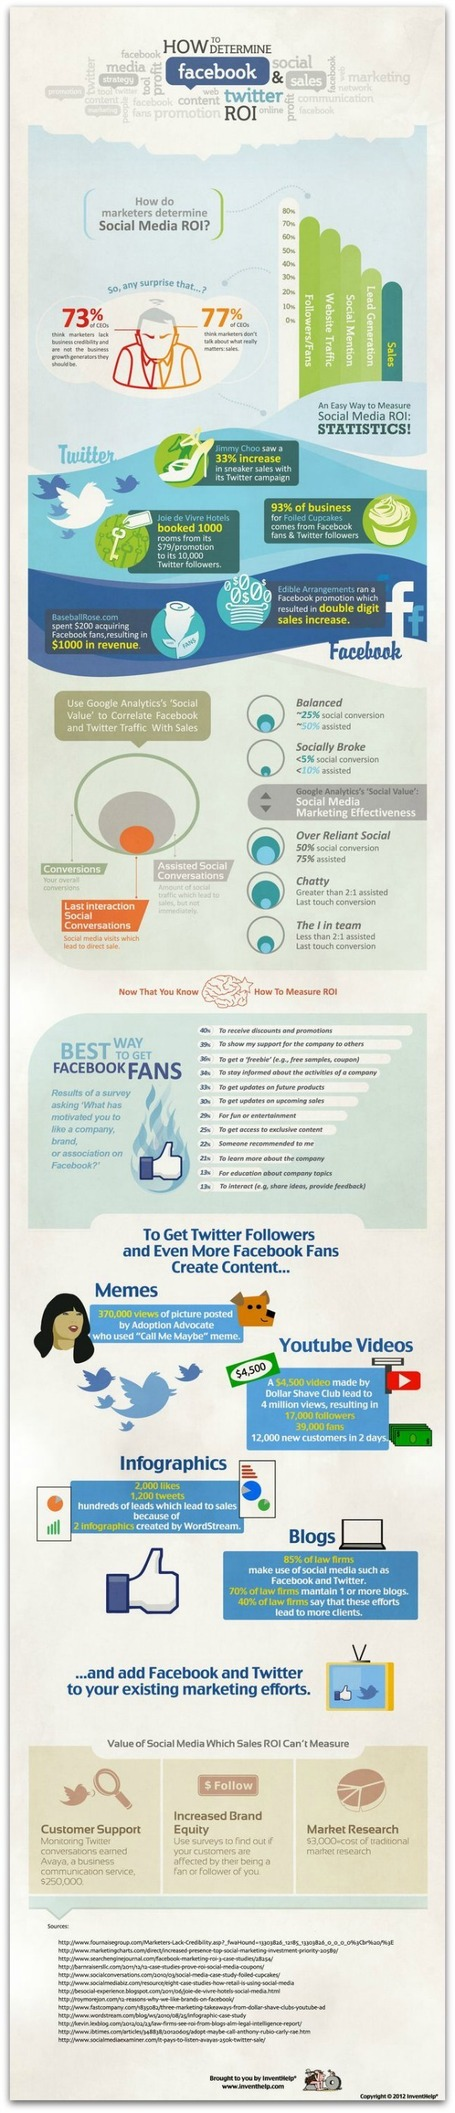 Infographic: How to measure Facebook and Twitter ROI | Digital Brand Marketing | Scoop.it